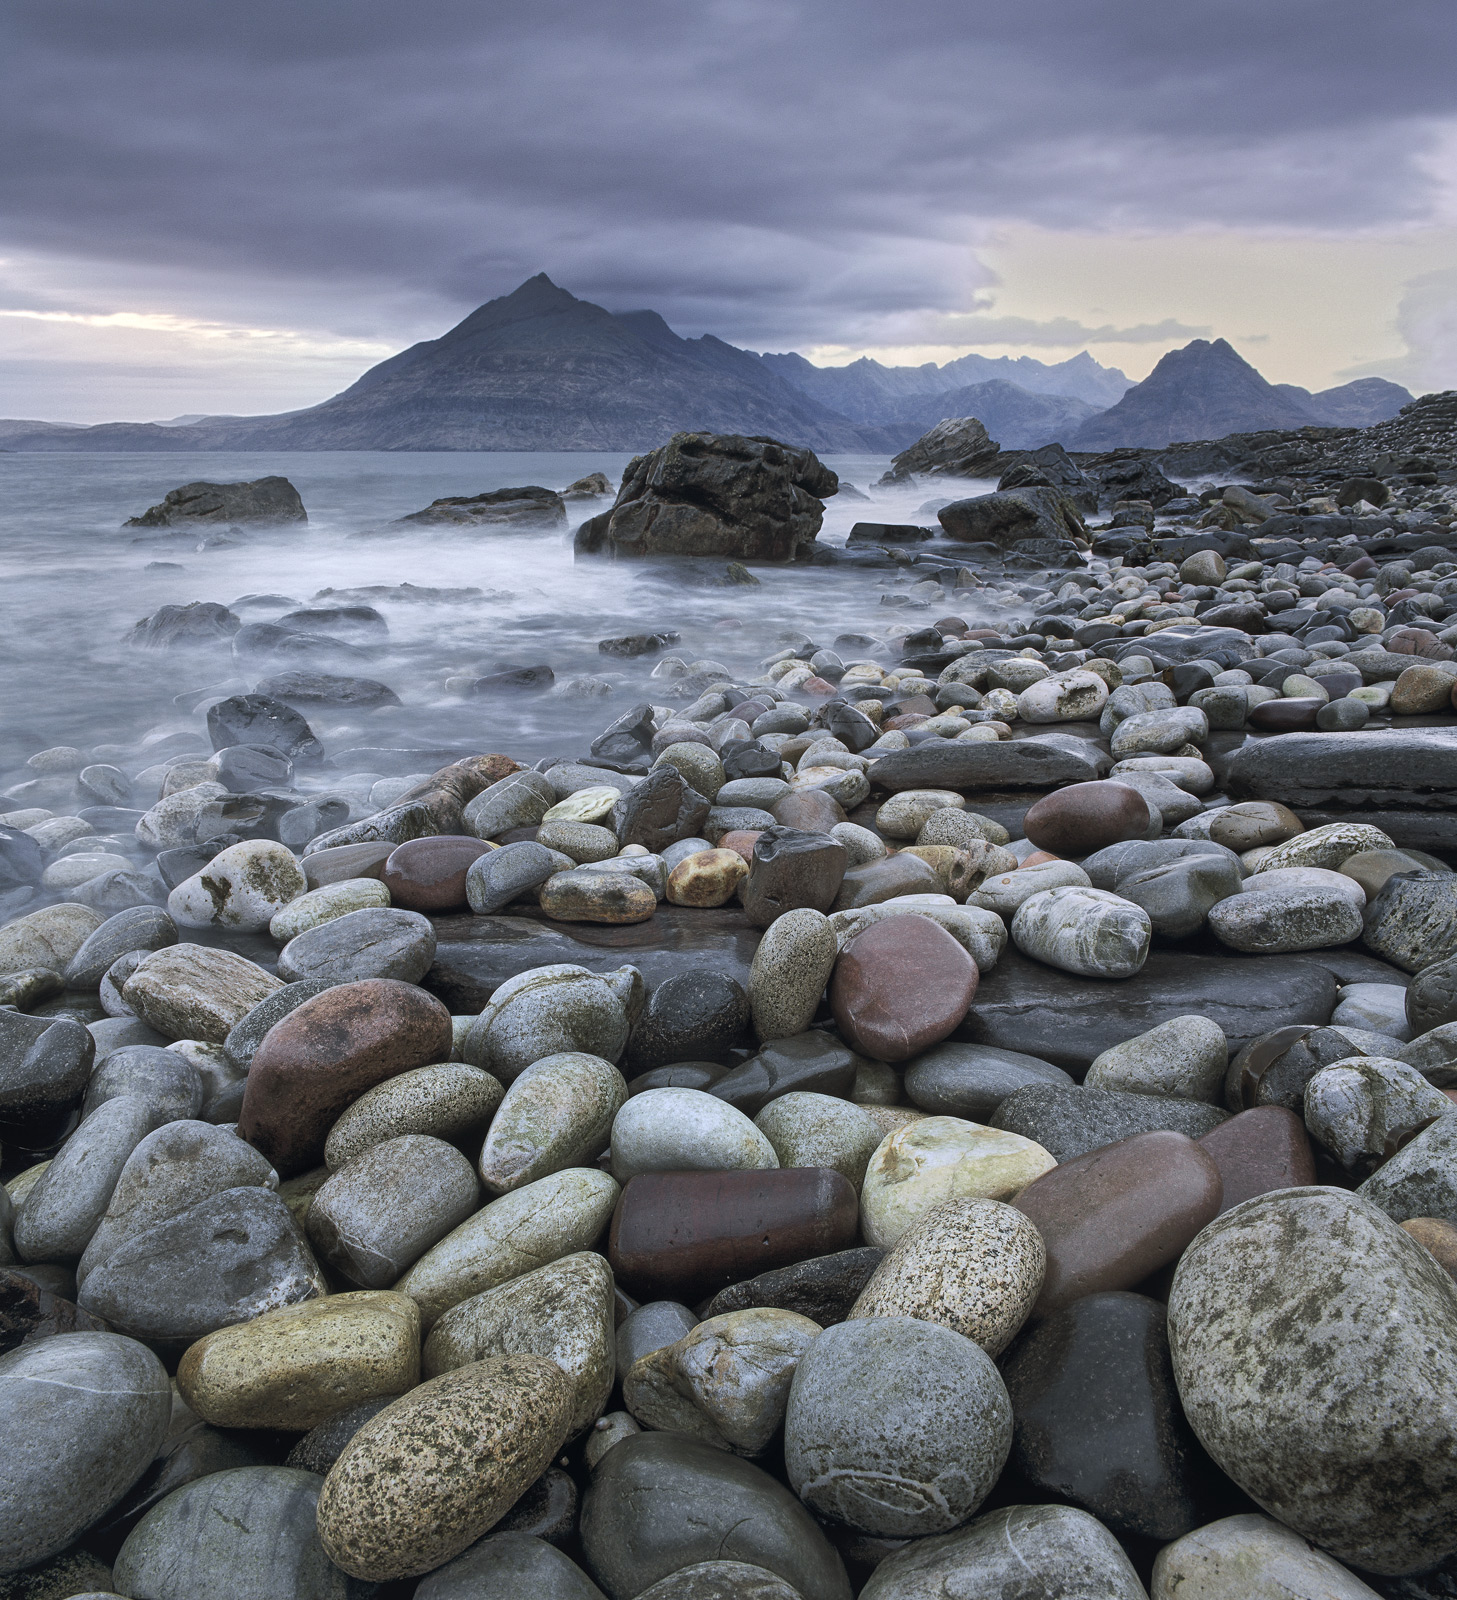 At first glance Elgol seems a quite depressing uninteresting place albeit with one of the finest backdrops that money can't buy...